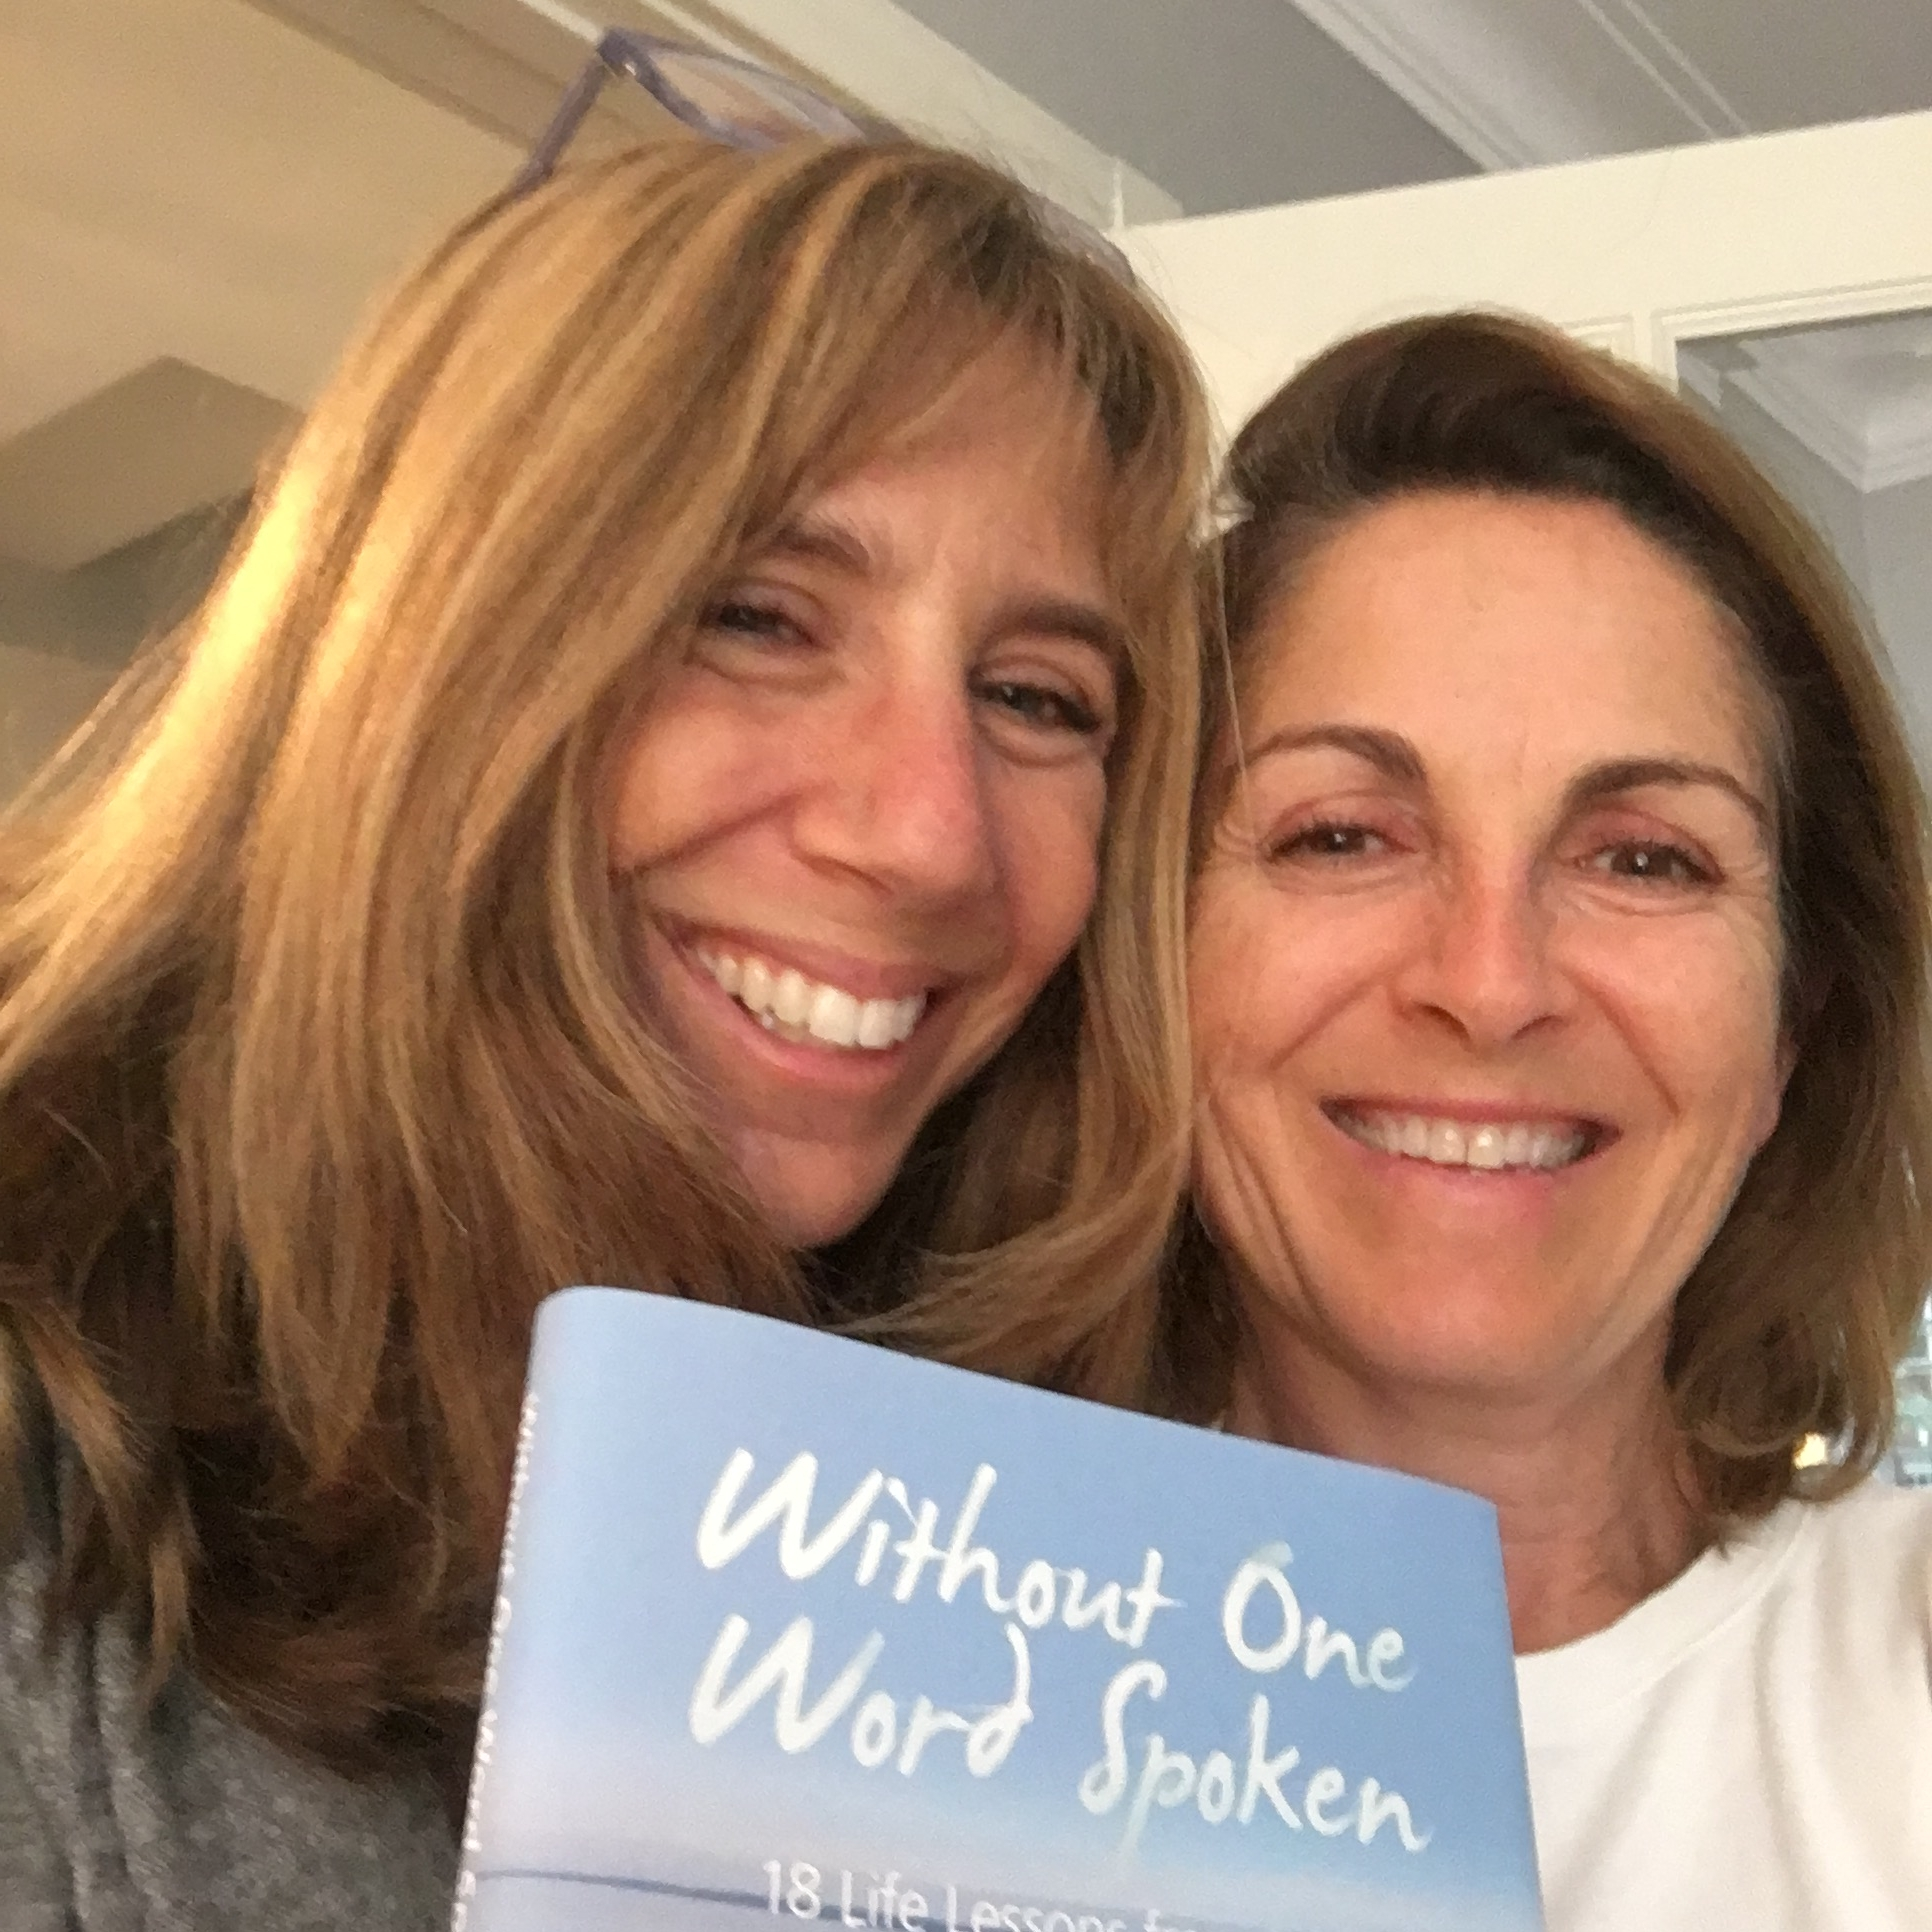 ellen schwartz and michelle kosoy with book 'without one word spoken'